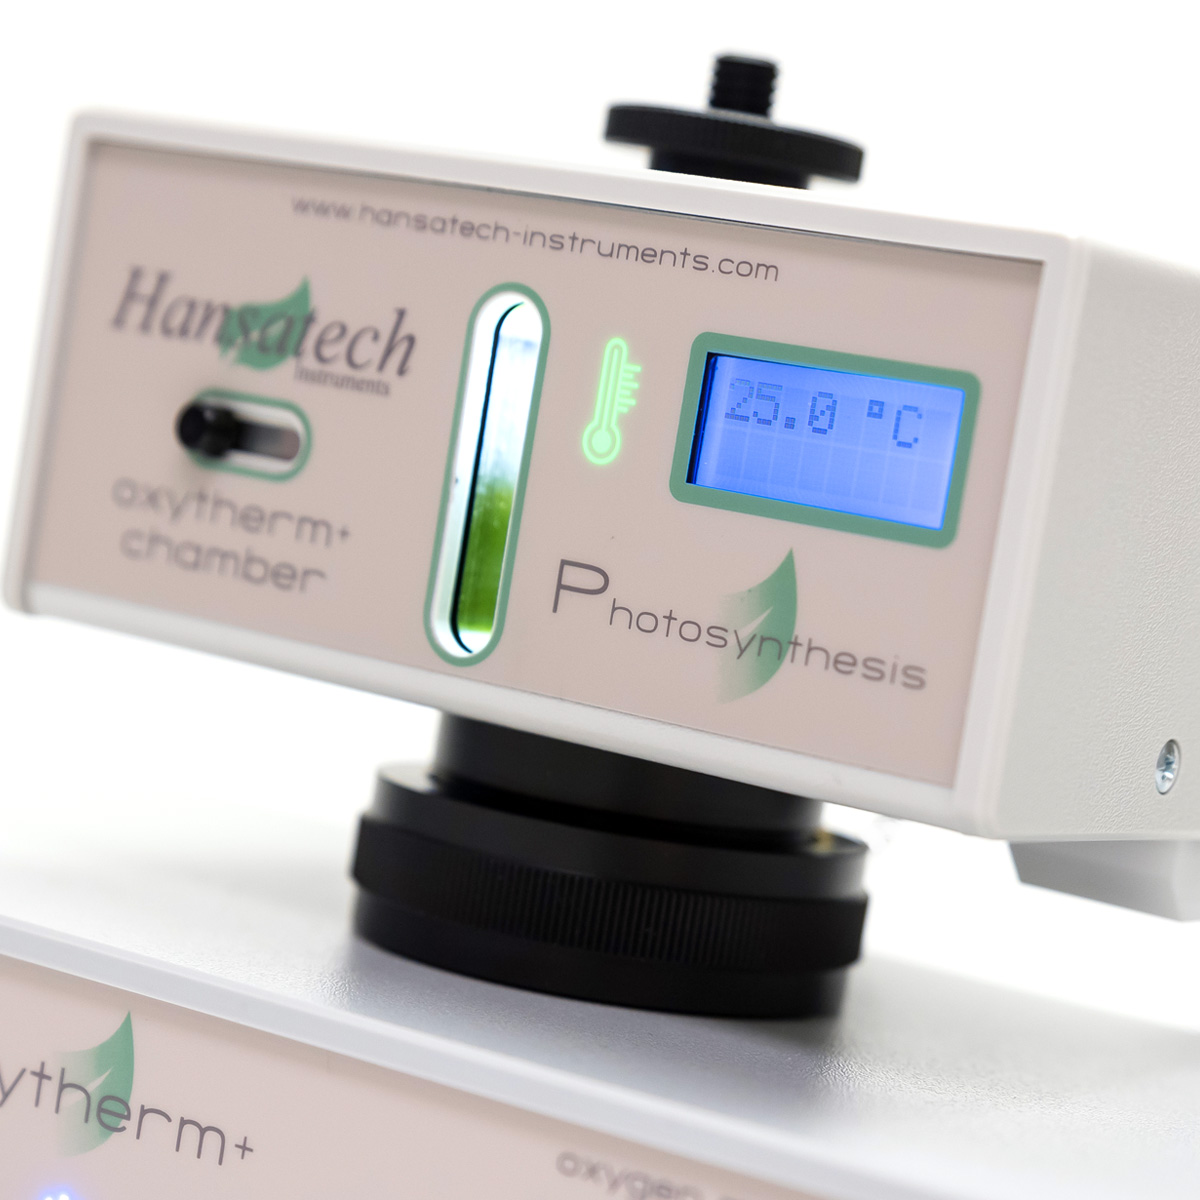 Oxytherm+ Photosynthesis Electrode Chamber | Hansatech Instruments | Oxygen electrode and chlorophyll fluorescence measurement systems for cellular respiration and photosynthesis research